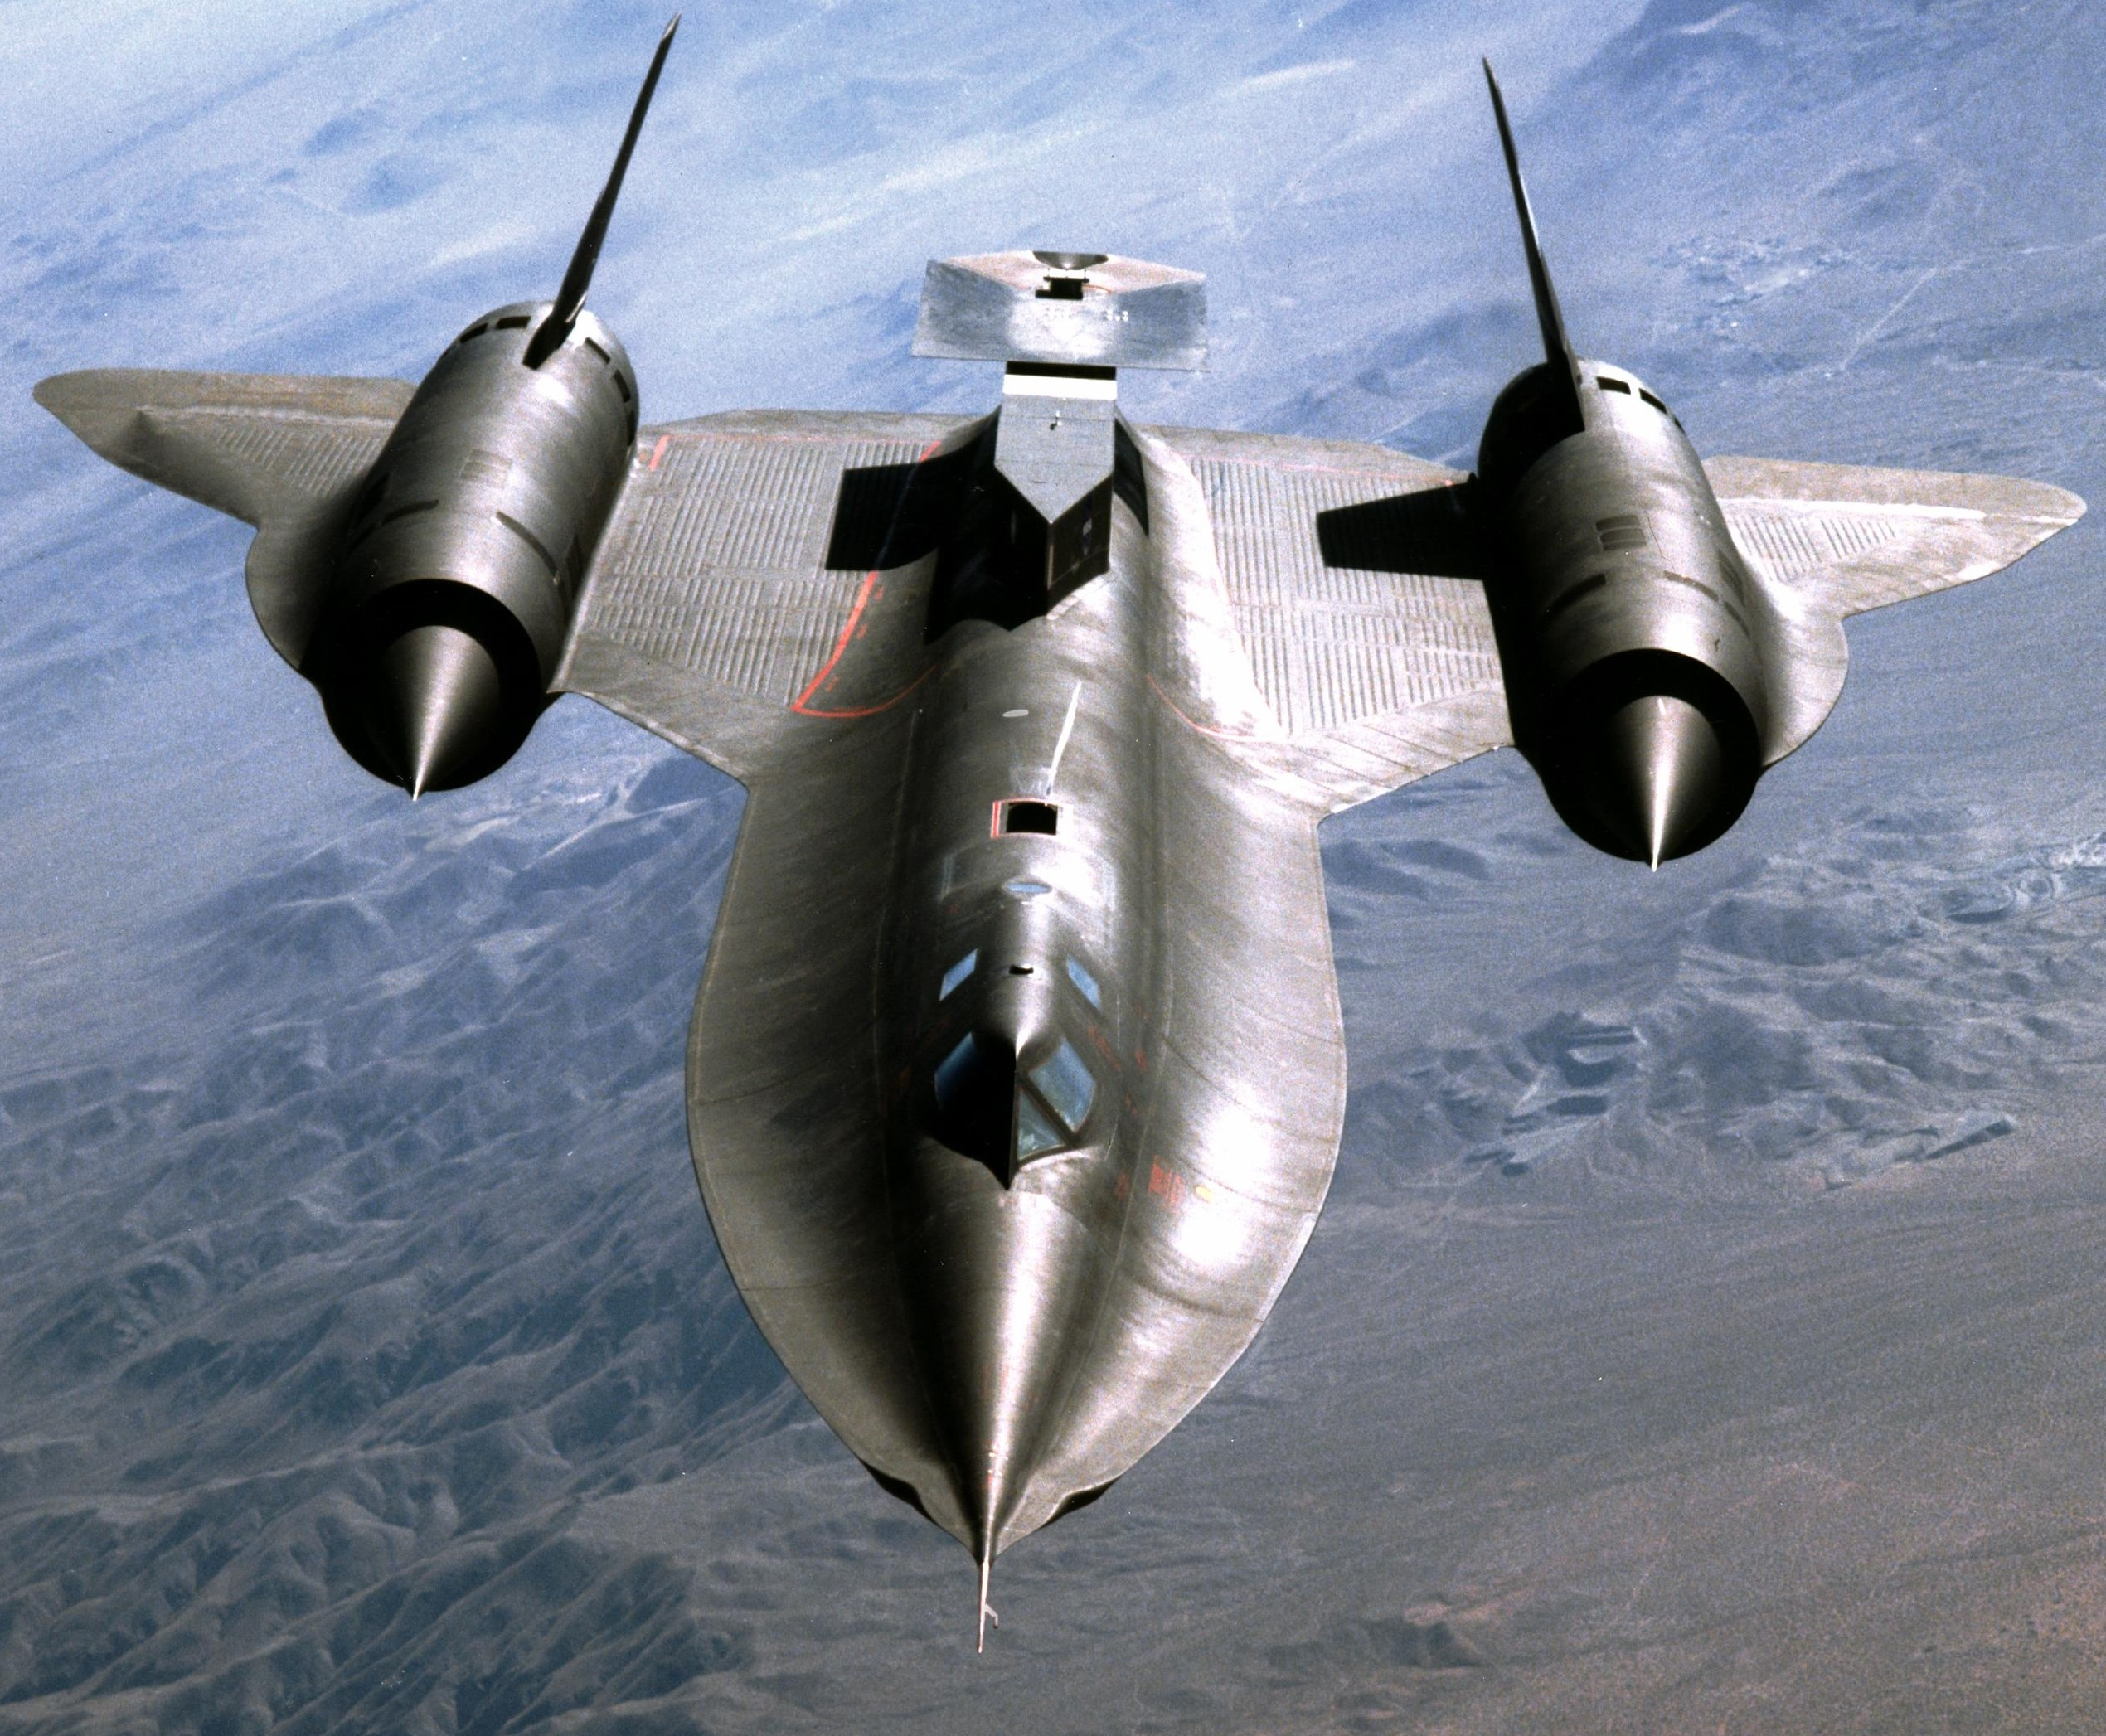 30 Of The Fastest Aircraft In The World Page 26 Of 35